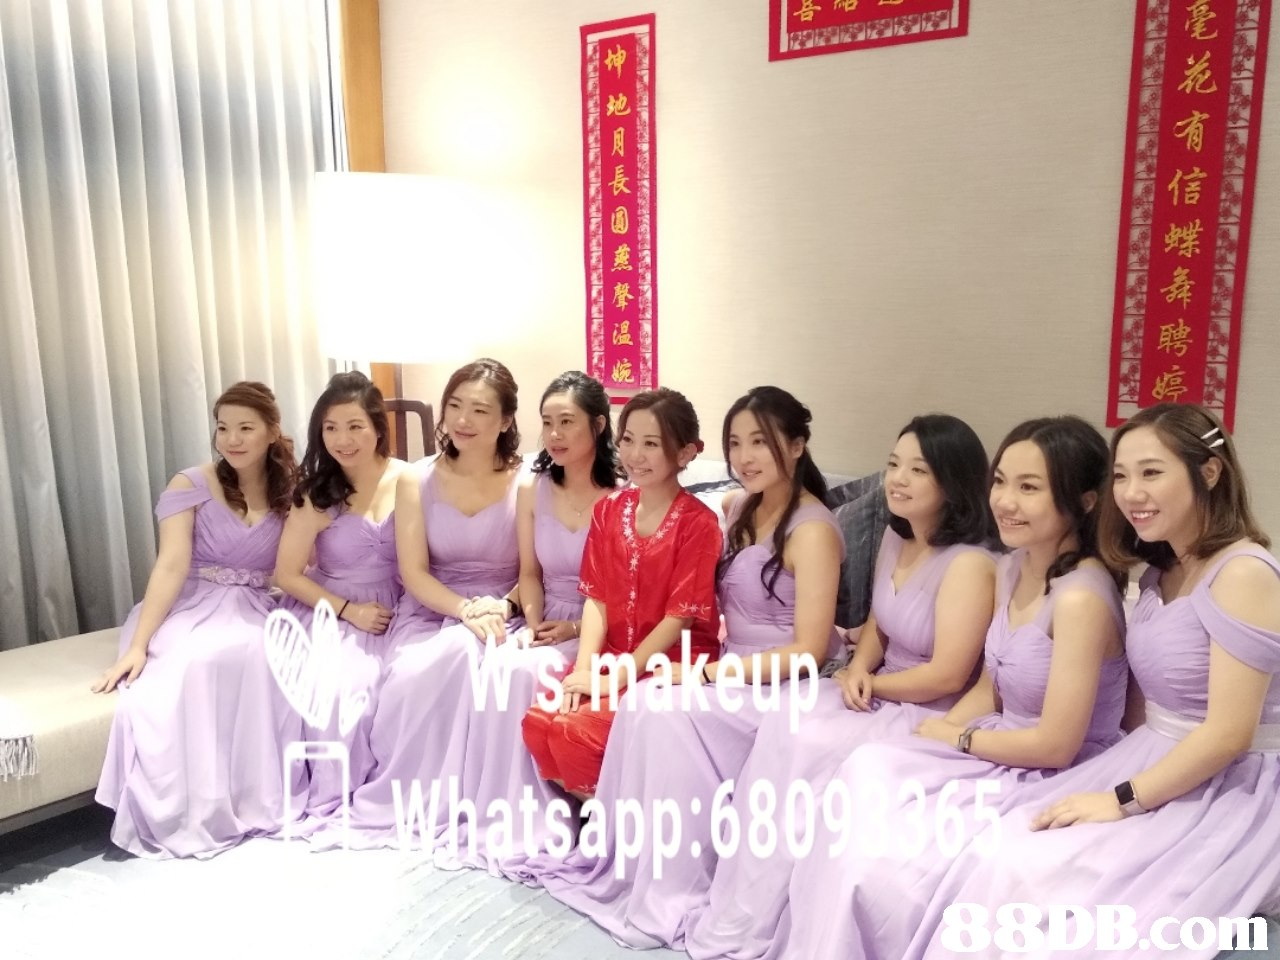 app:680 B.con 毫花有信蝶舞聘婷  Bridesmaid,Event,Lady,Dress,Fun